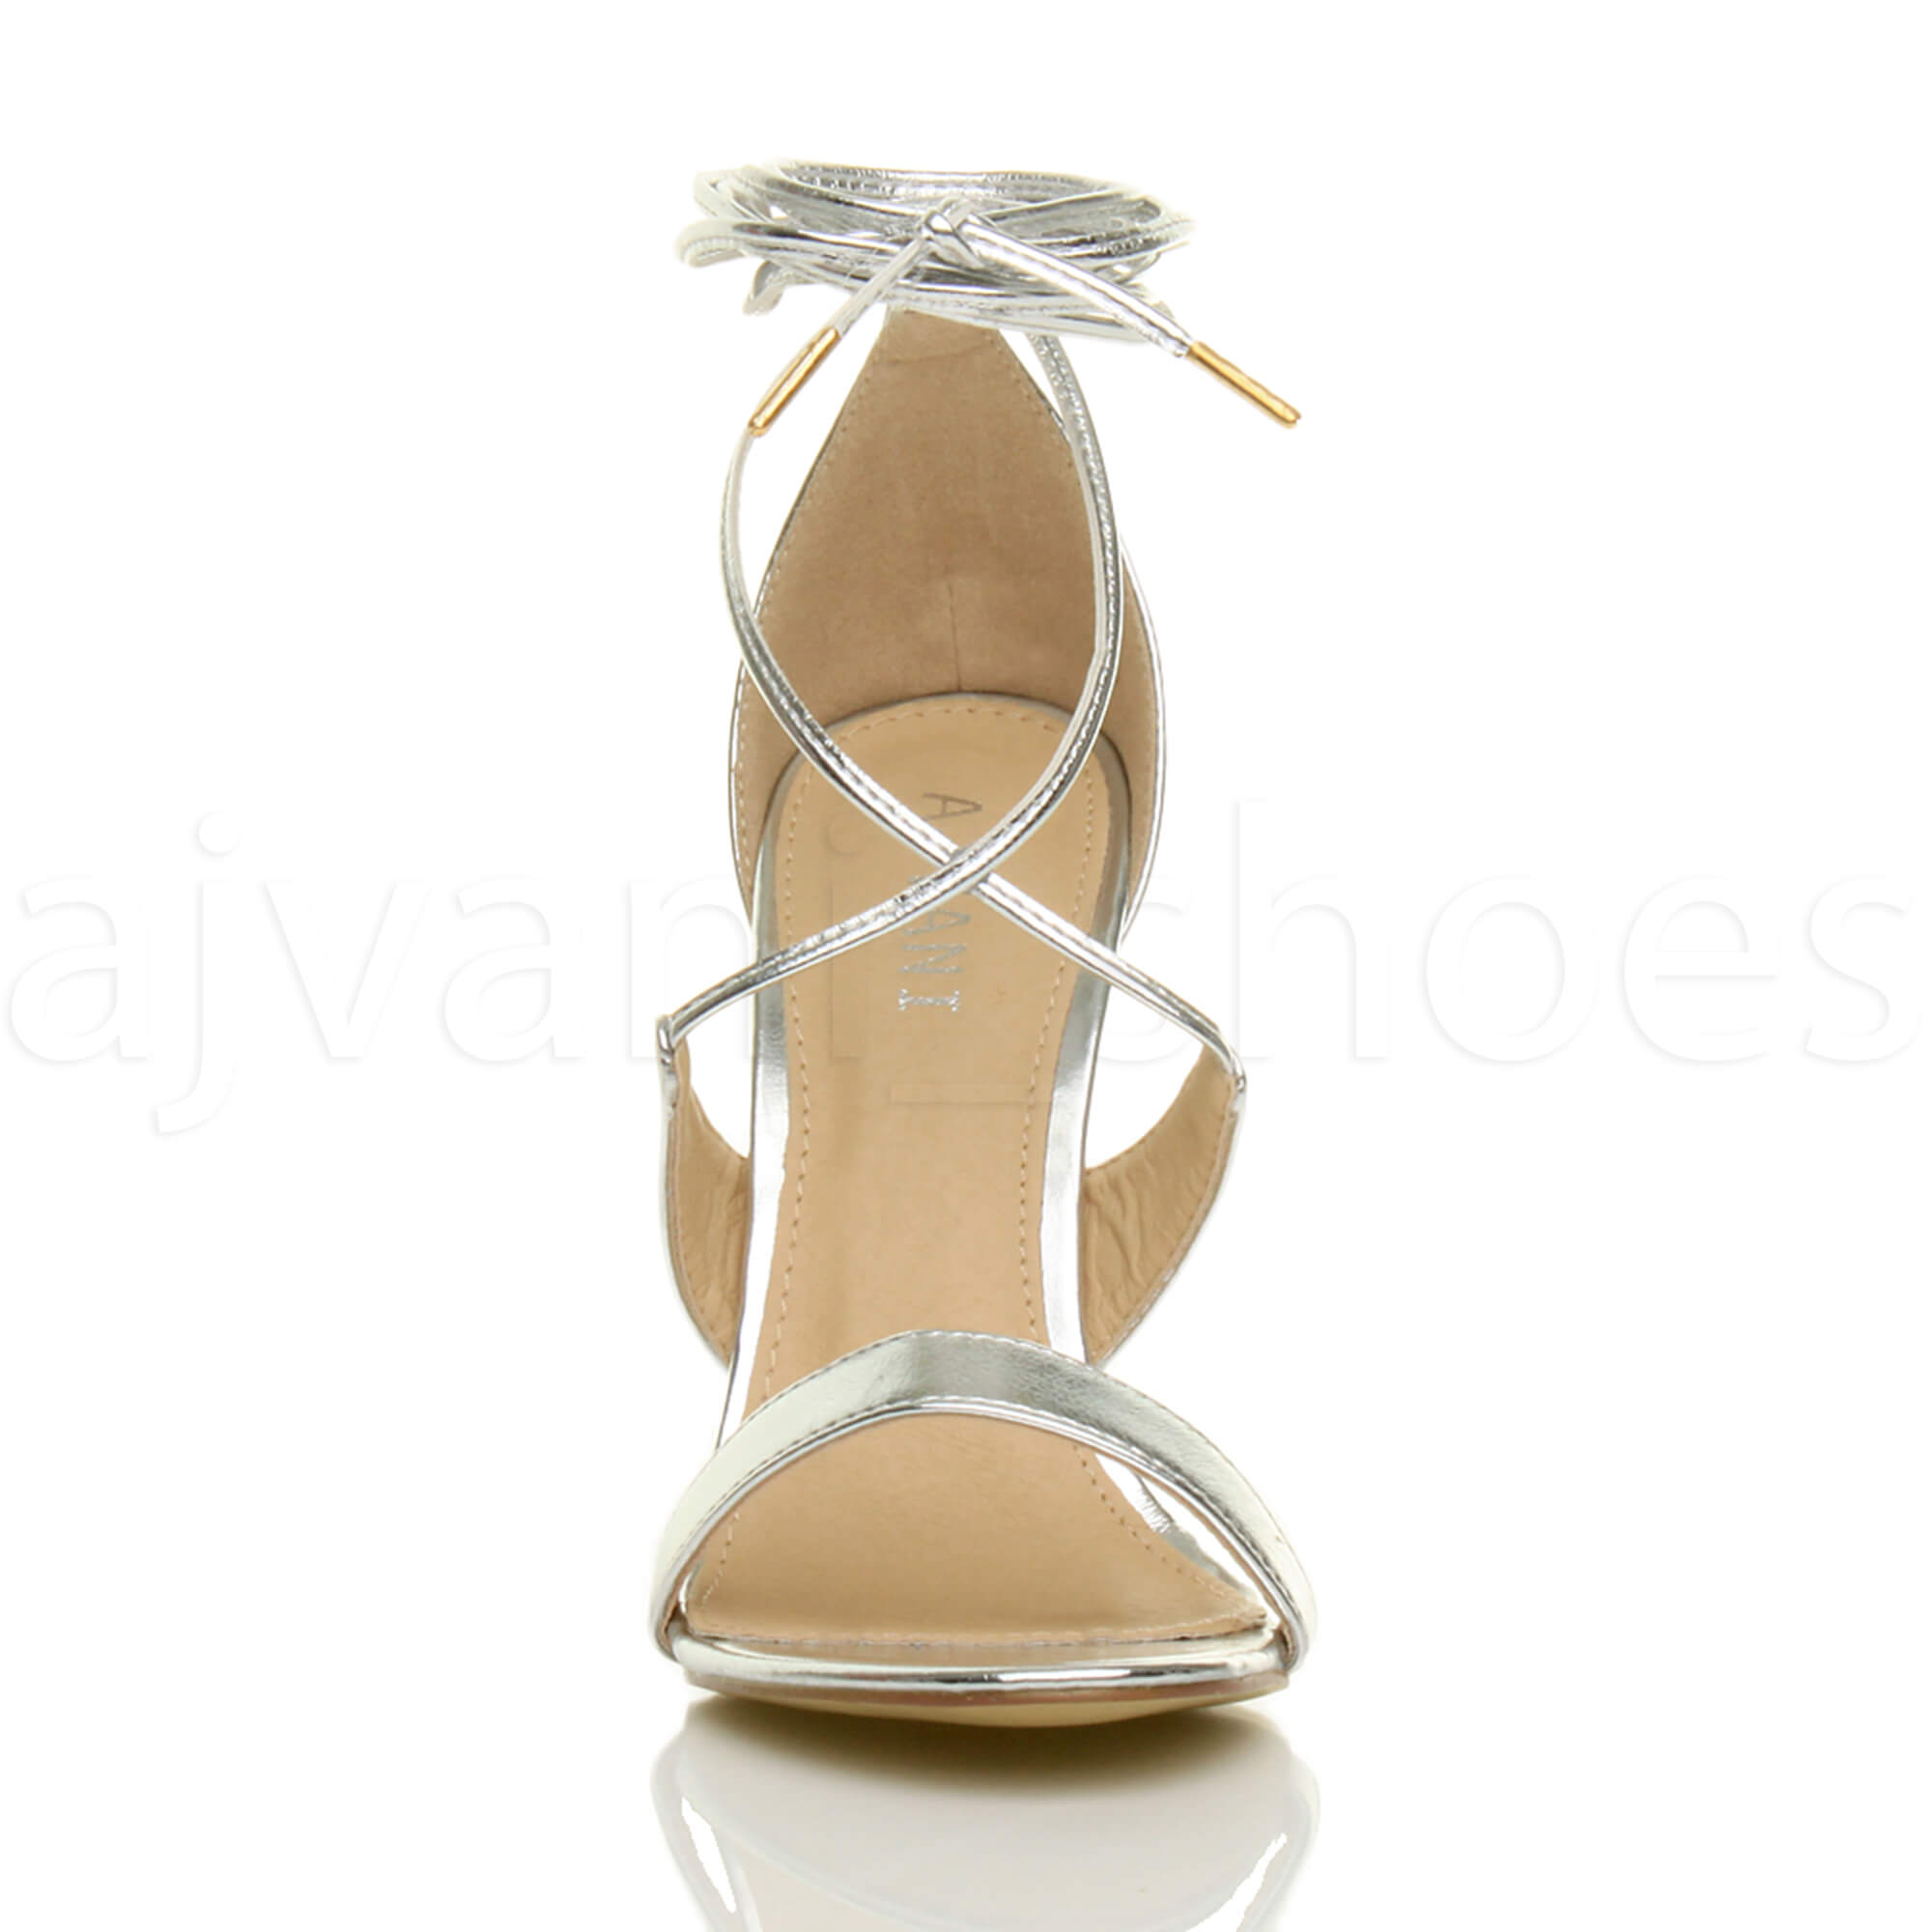 WOMENS-LADIES-HIGH-HEEL-BARELY-THERE-STRAPPY-LACE-TIE-UP-SANDALS-SHOES-SIZE thumbnail 49